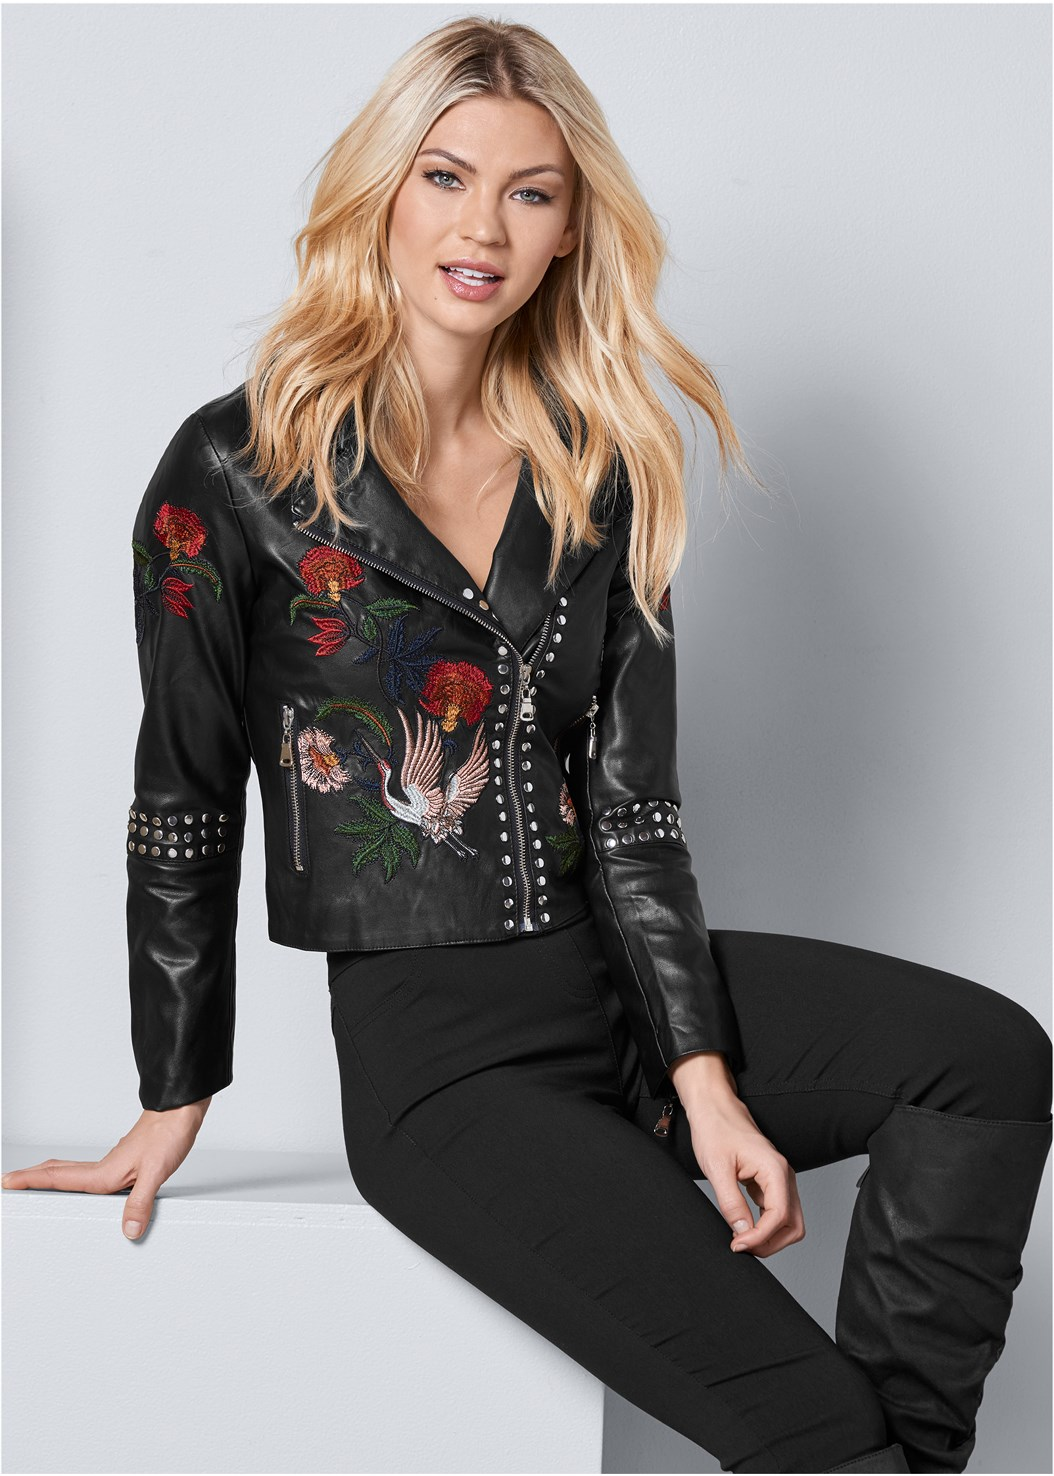 Moto Faux Leather Jacket,Mid Rise Full Length Slimming Stretch Jeggings,Western Style Booties,Stud Detail Crossbody